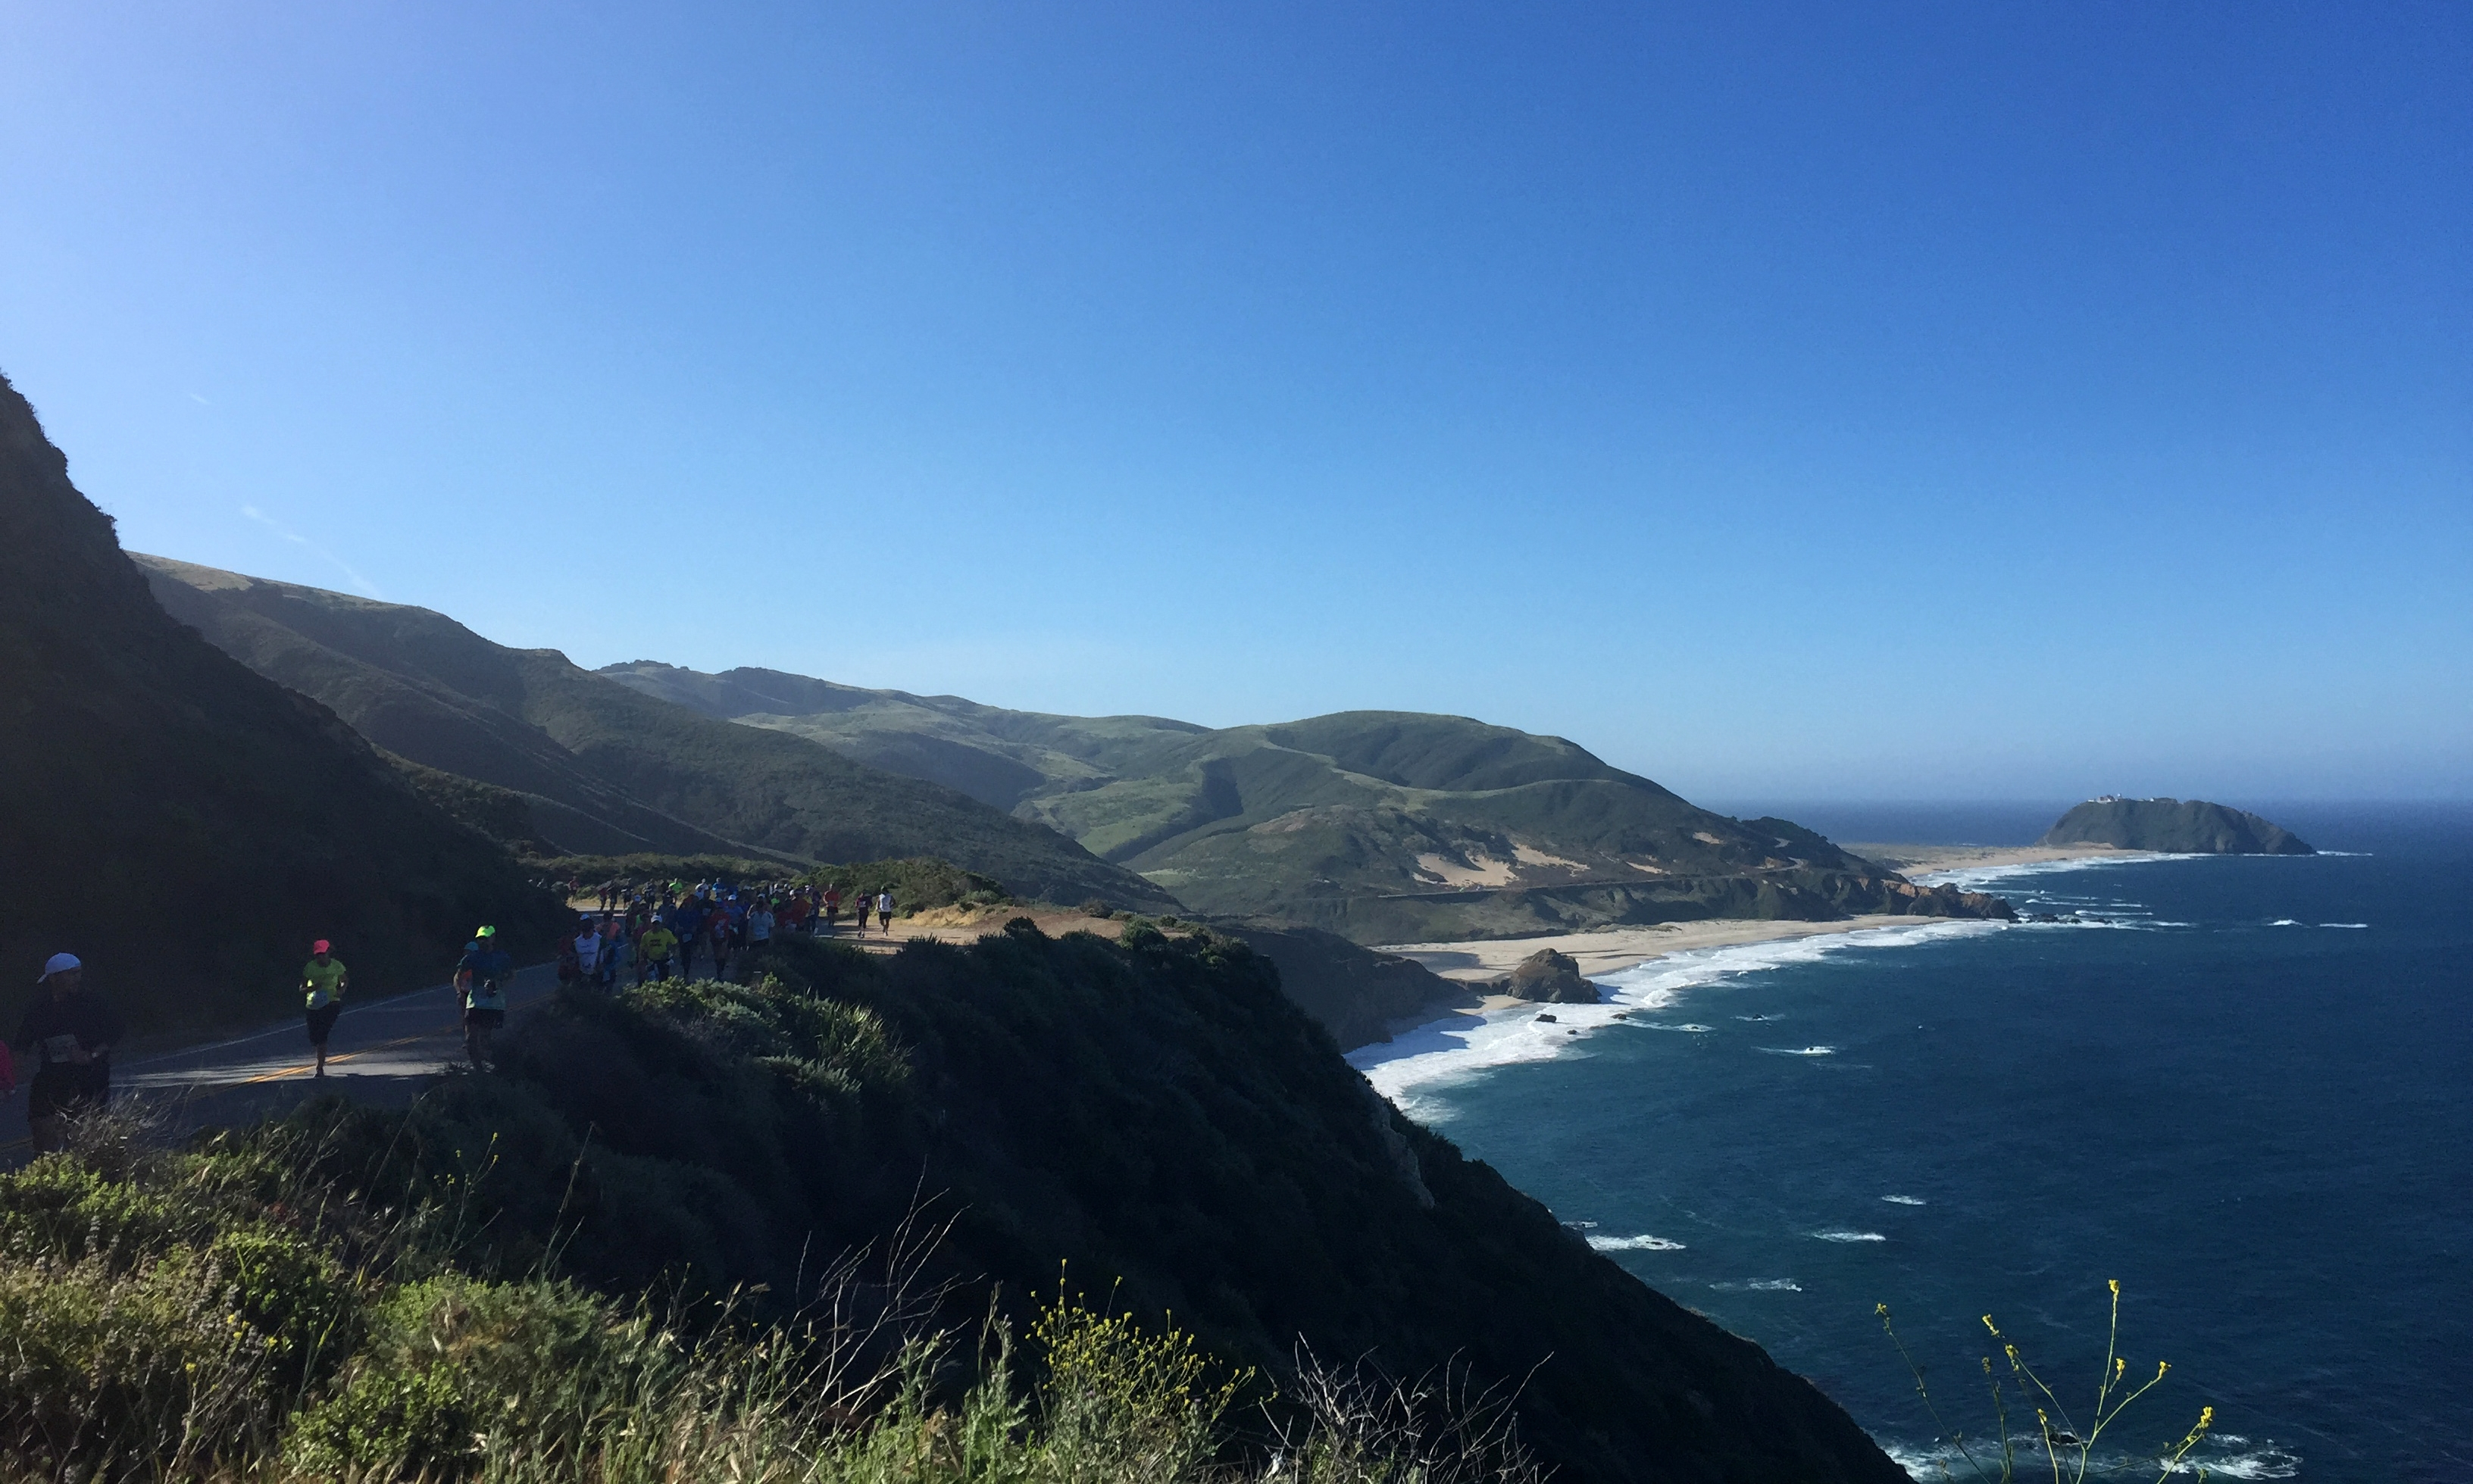 2015 Big Sur International Marathon